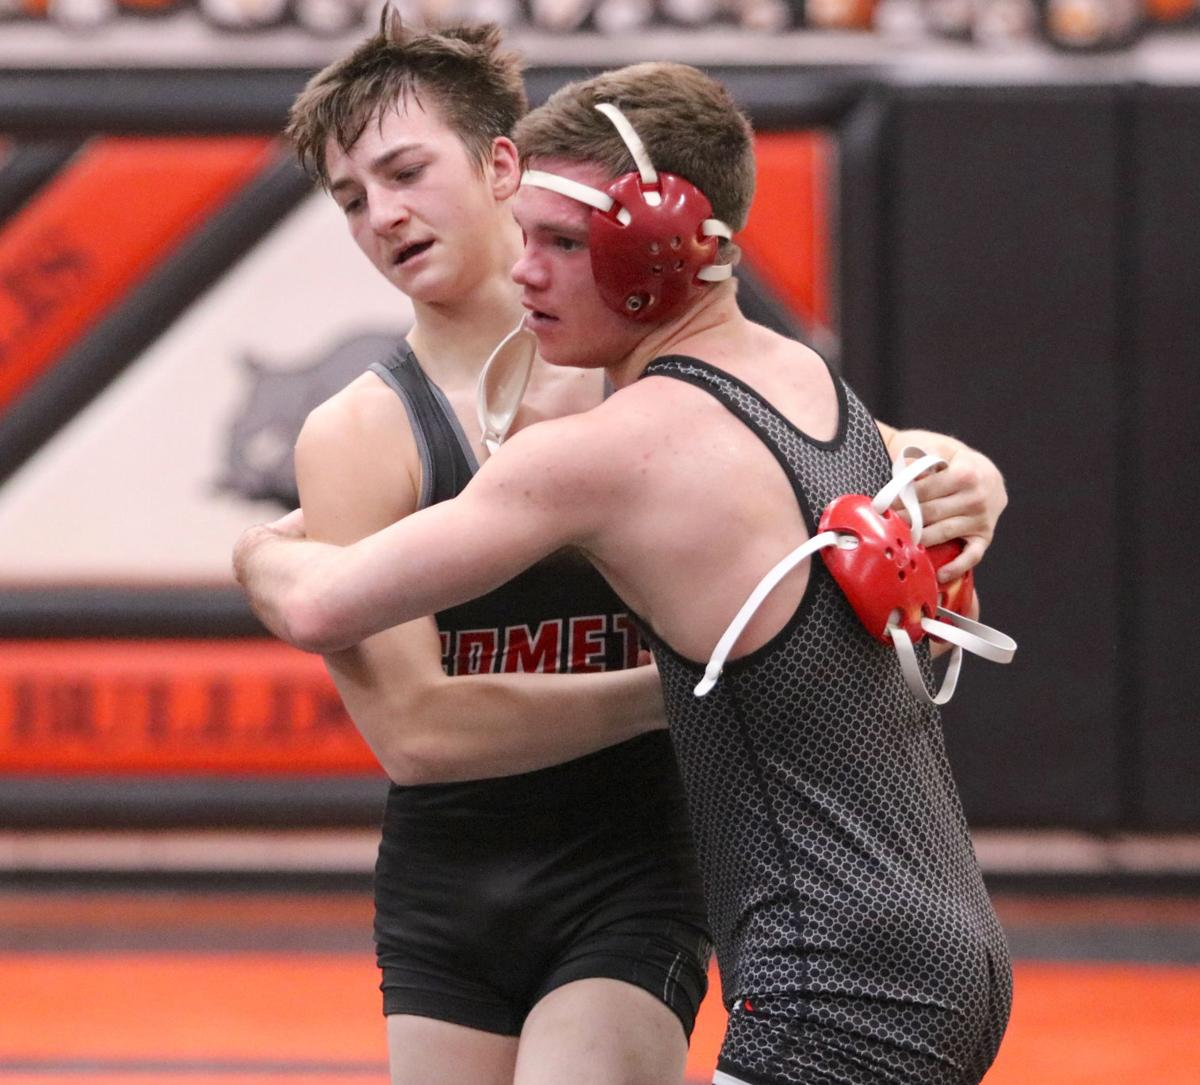 1A sectionals: A performance to 'Dye' for